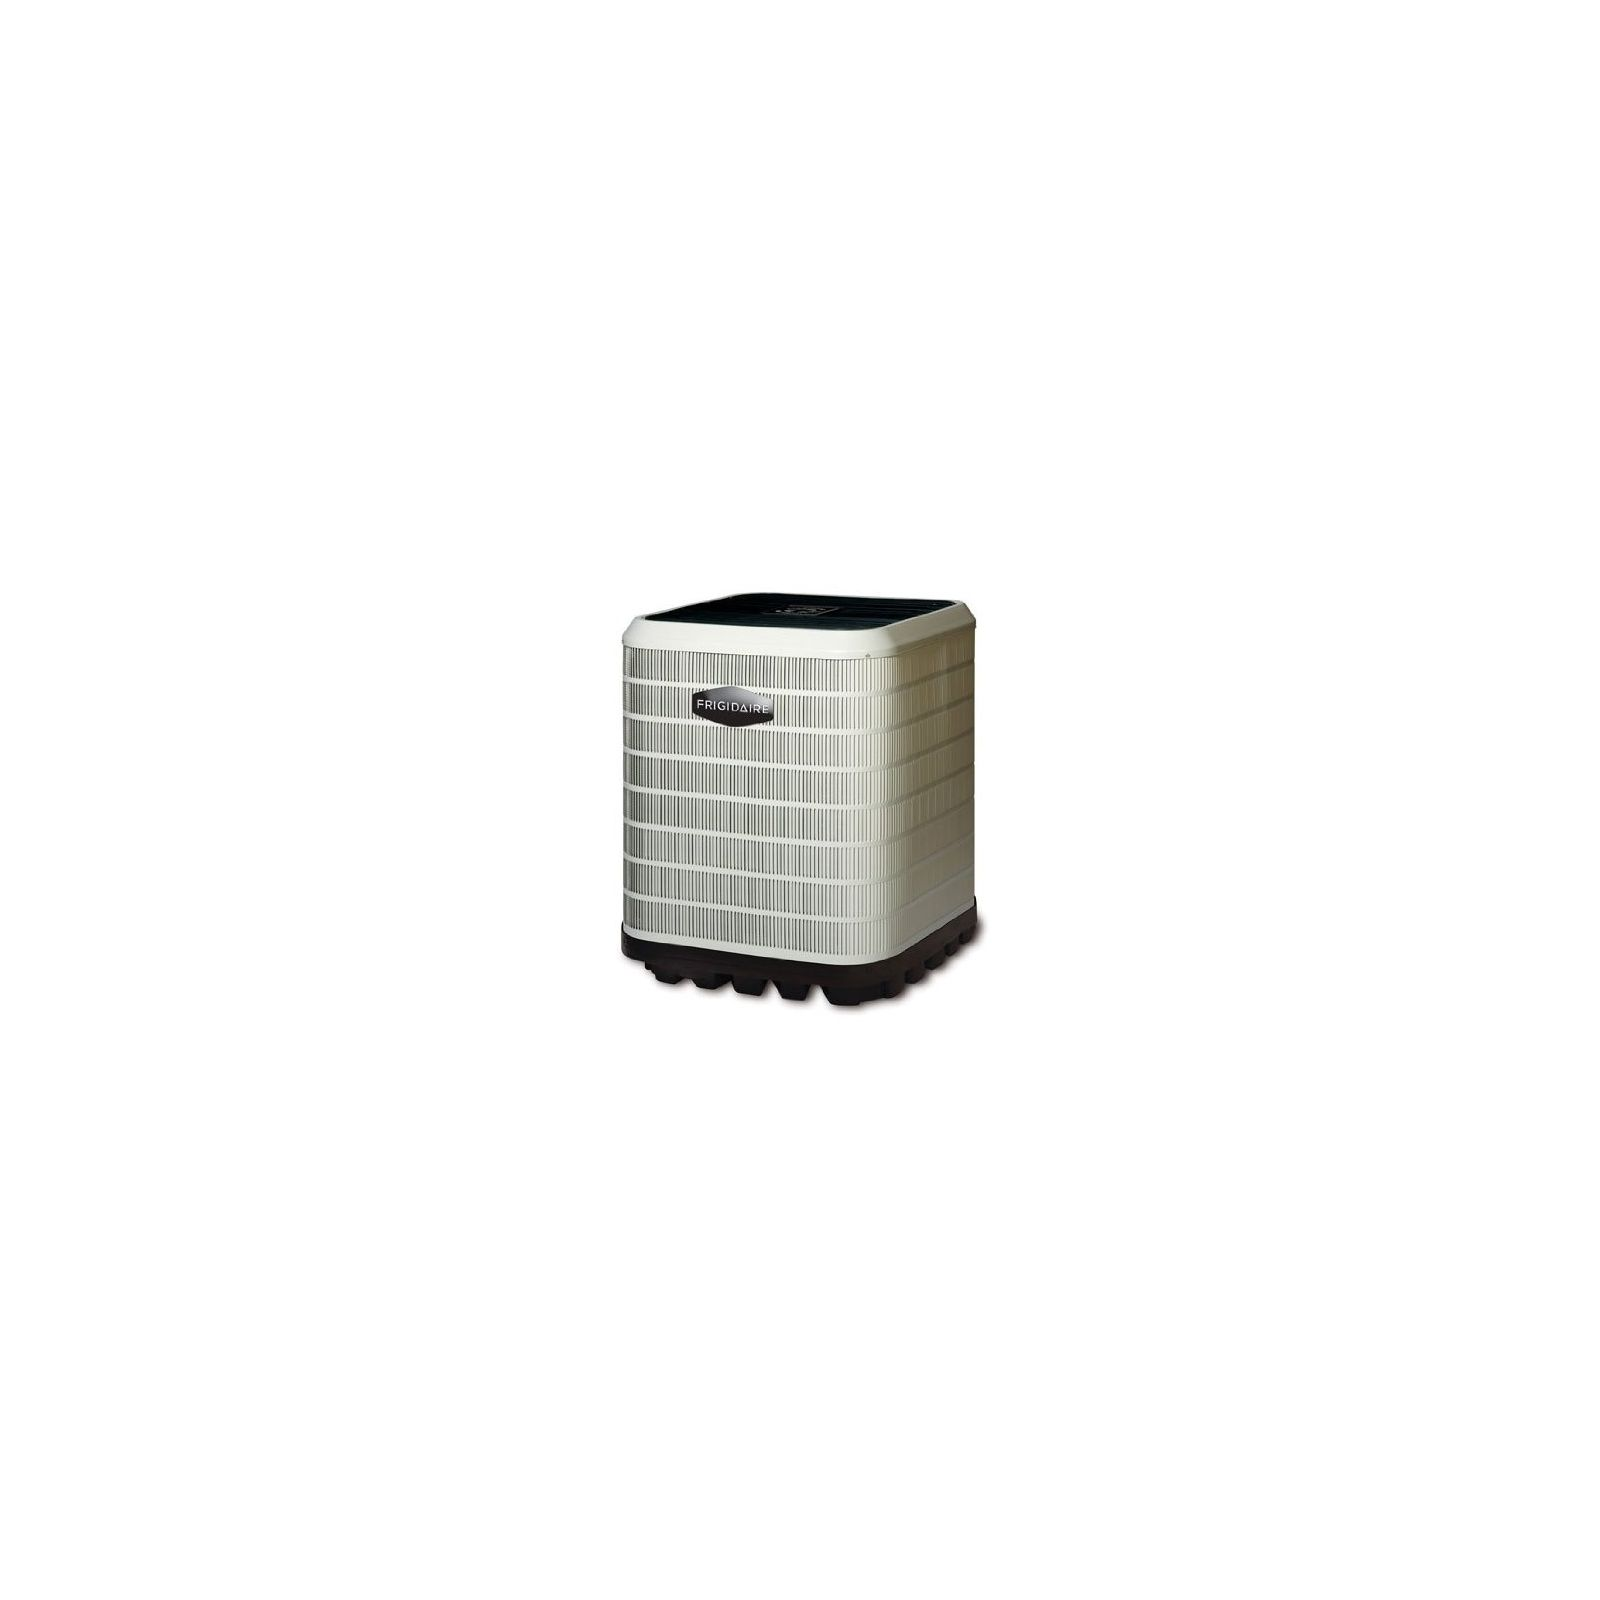 Frigidaire 919668E - ET4BF-036KA - 3 Ton 16 SEER Extra High Efficiency Heat Pump, R410A